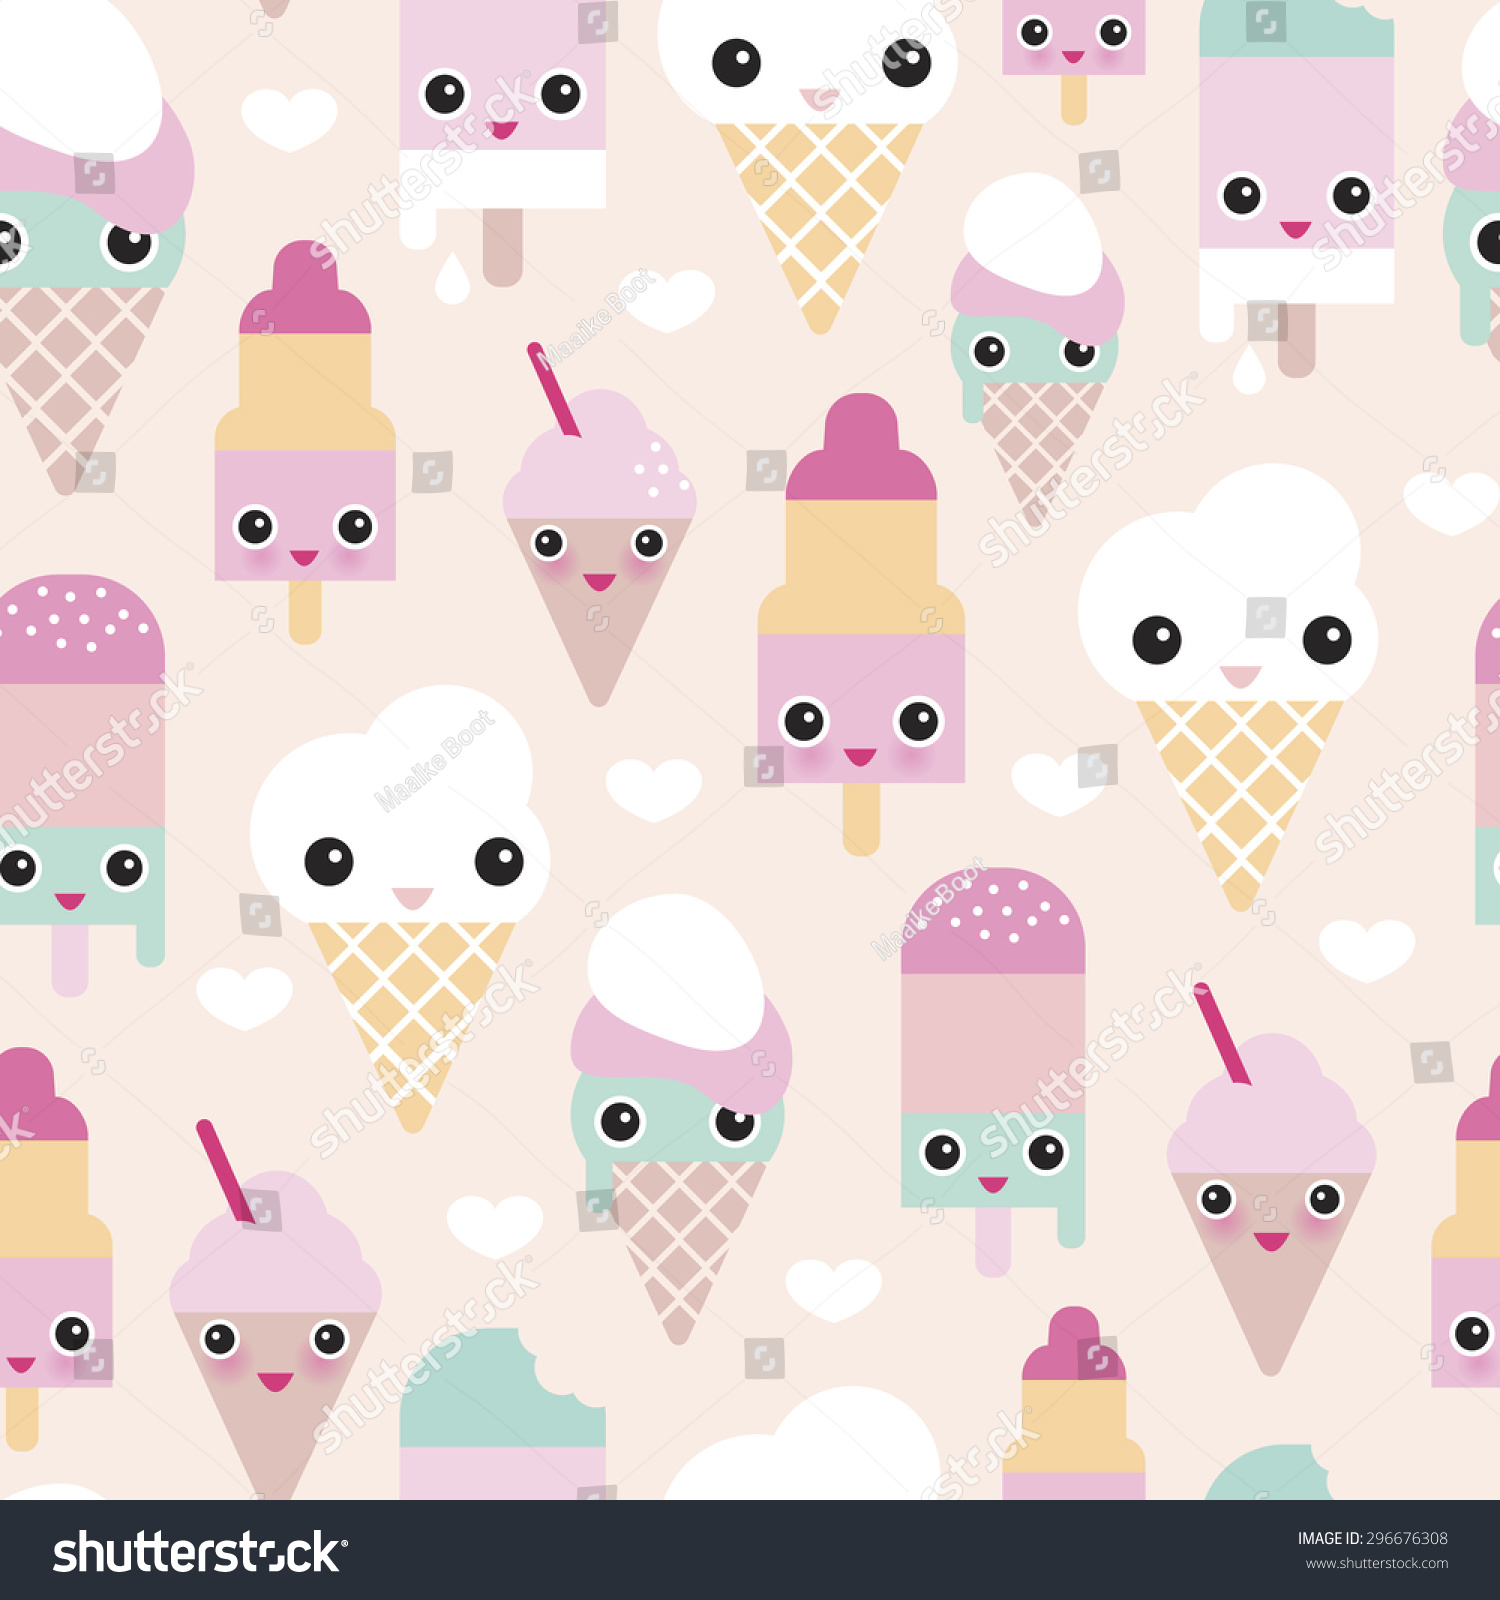 Cute Colorful Ice Cream Seamless Pattern Background: Seamless Colorful Pastel Popsicle Adorable Kawaii Summer